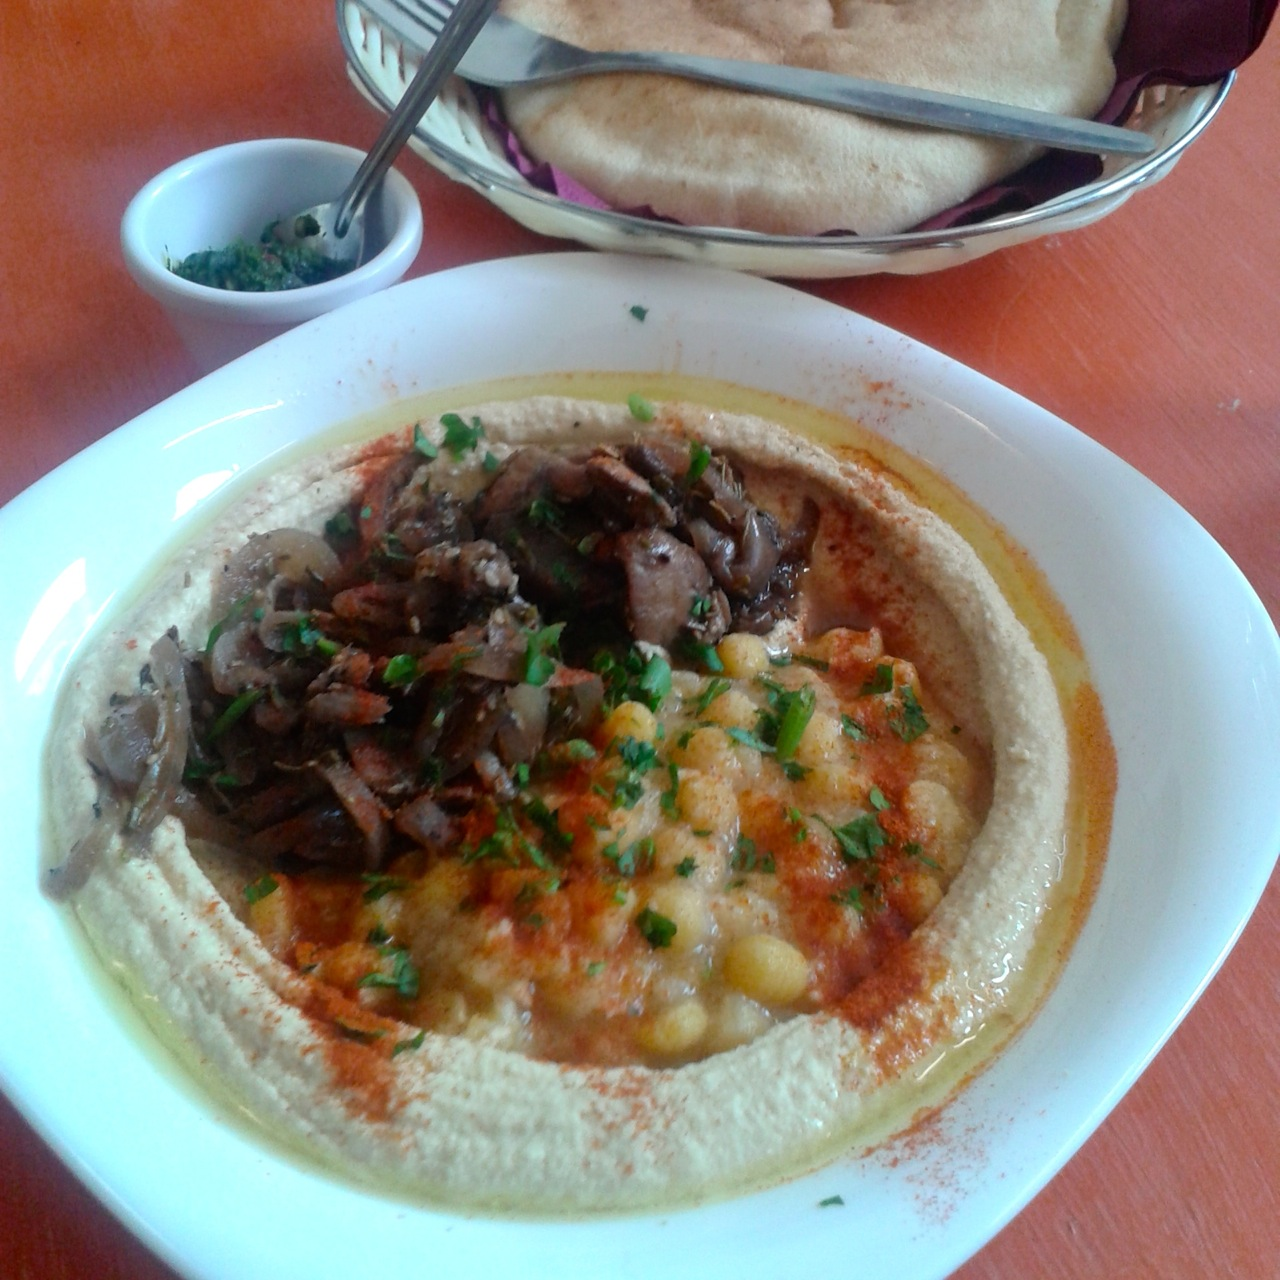 https://i0.wp.com/fatgayvegan.com/wp-content/uploads/2015/09/hummus-bowl-with-mushrooms.jpg?fit=1280%2C1280